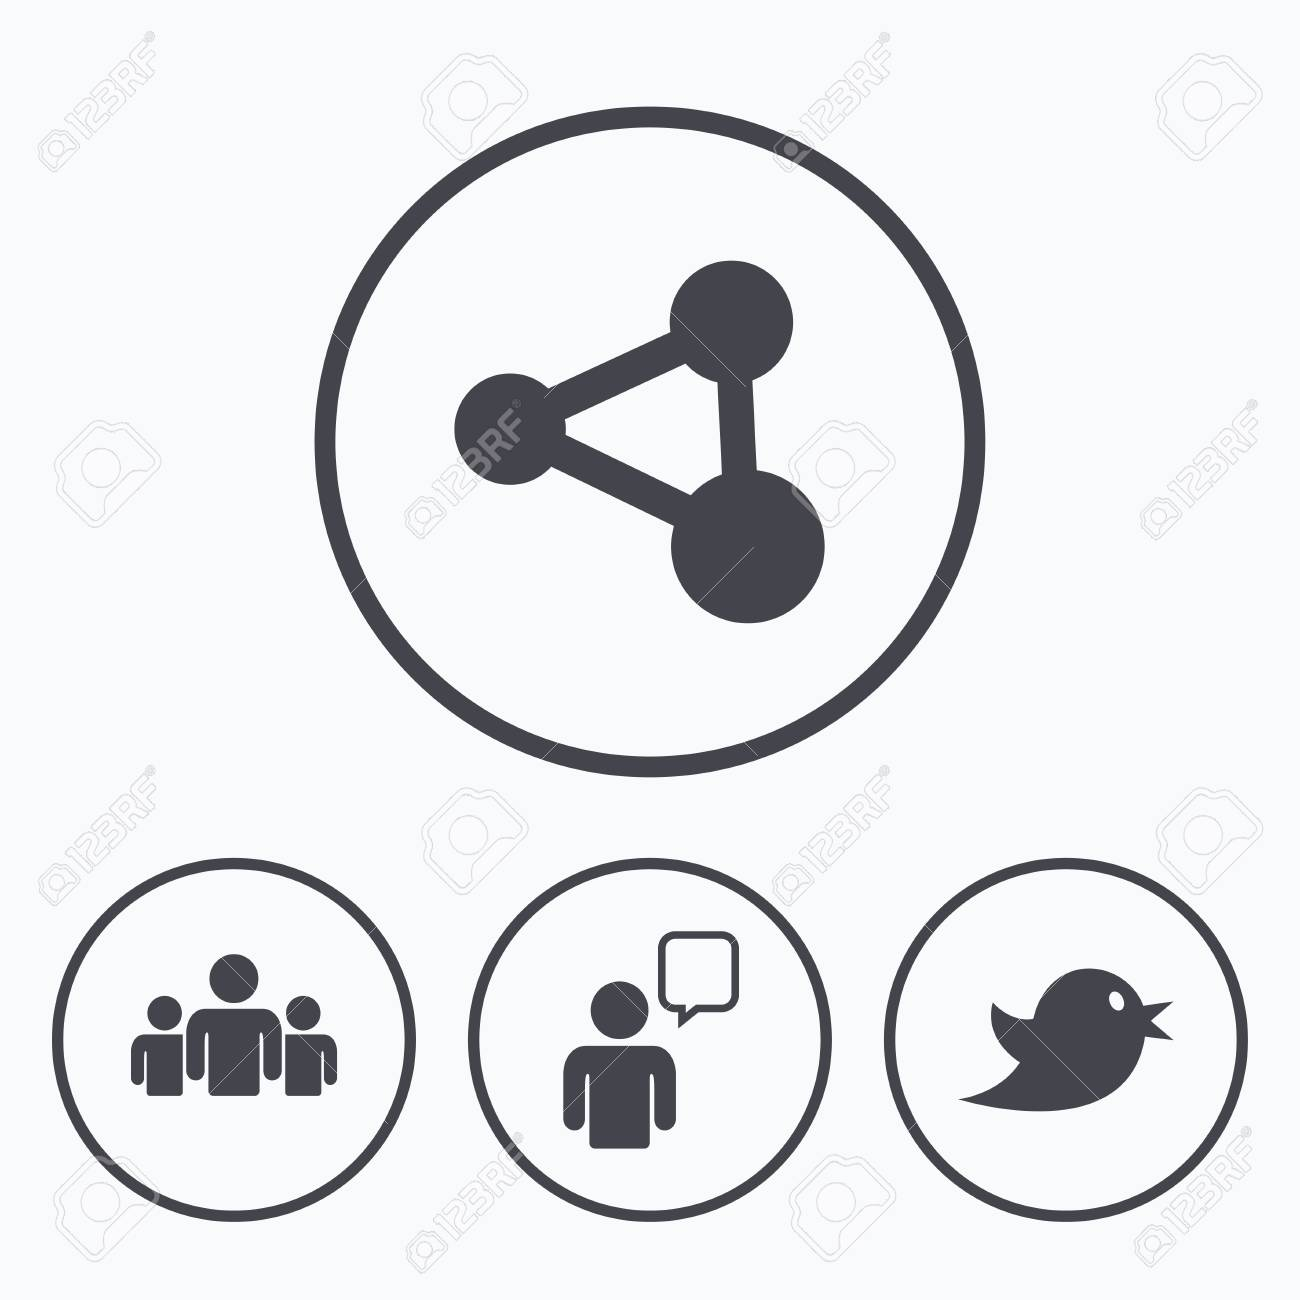 Group Of People And Share Icons Speech Bubble Symbols